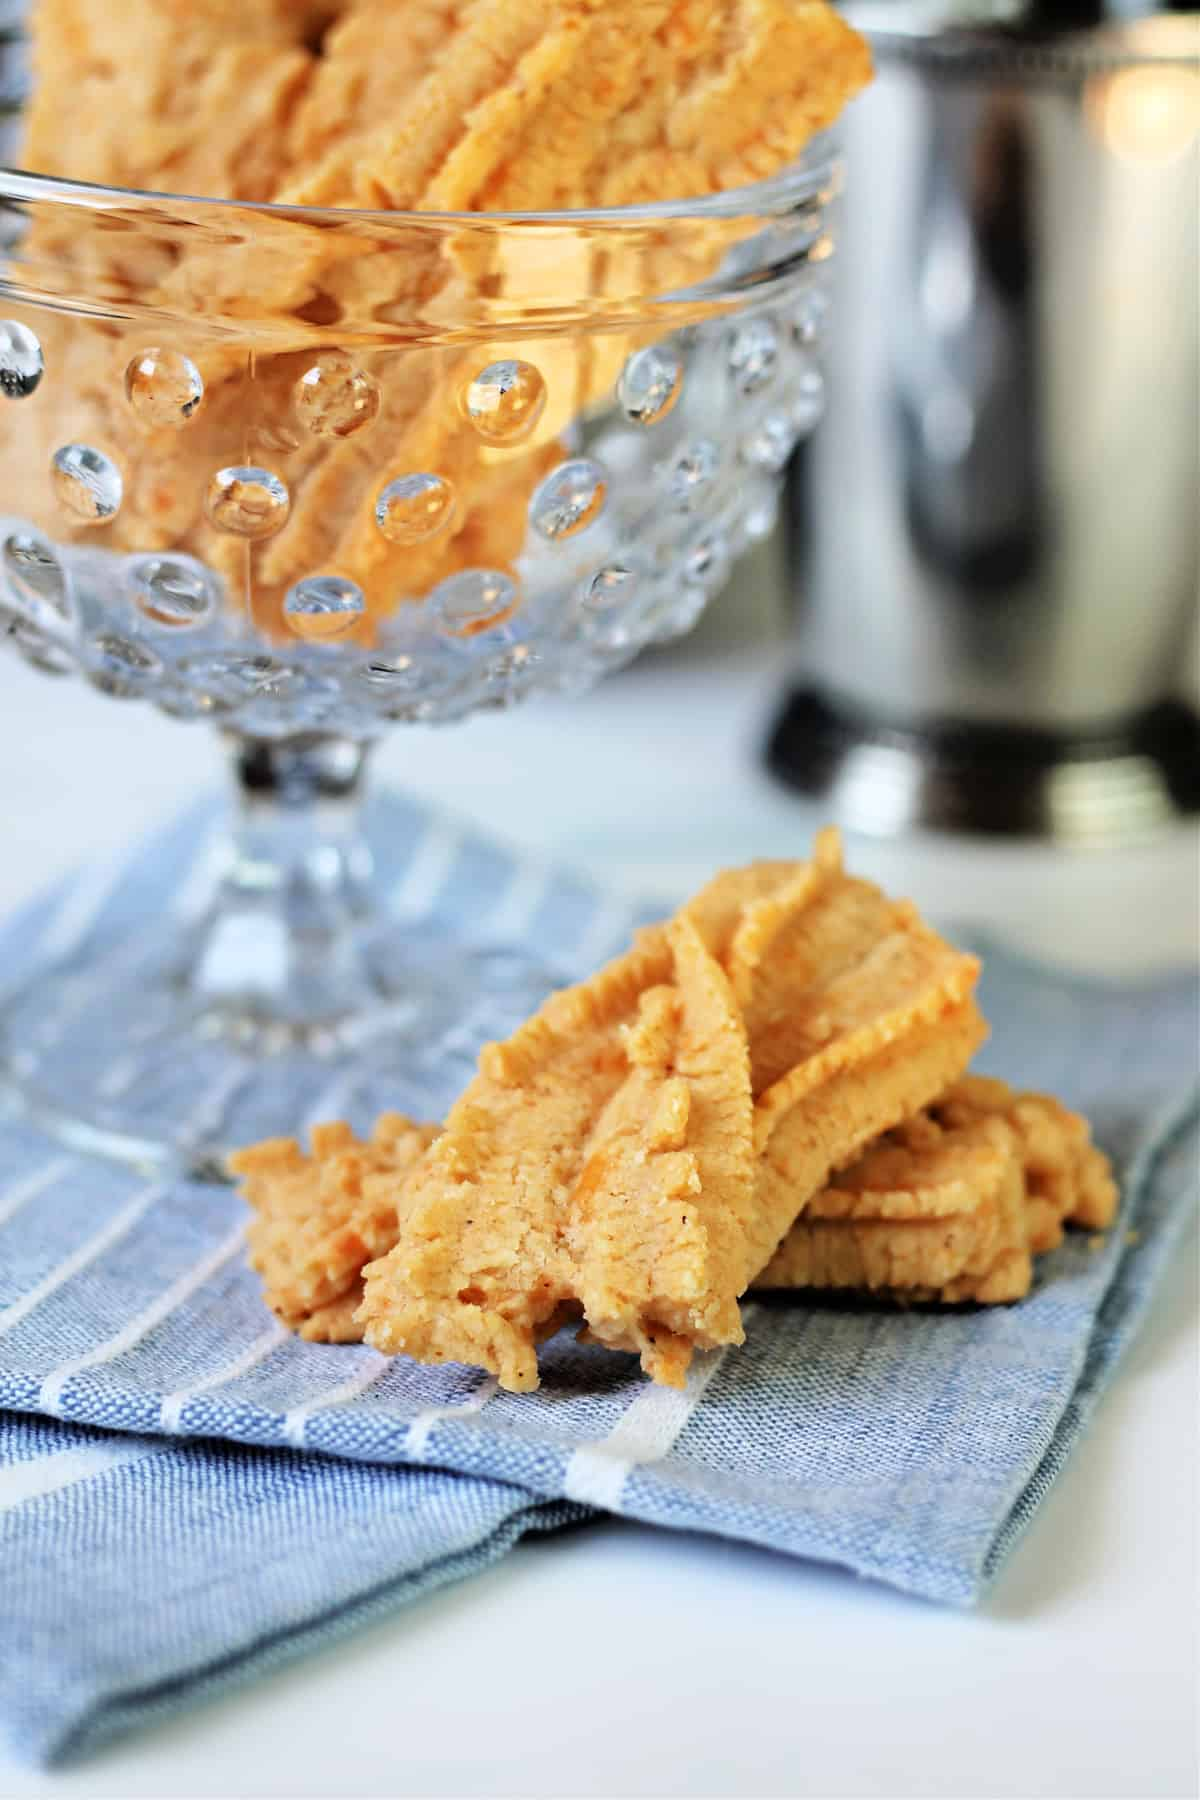 Southern Cheese Straws on a blue linen napkin.